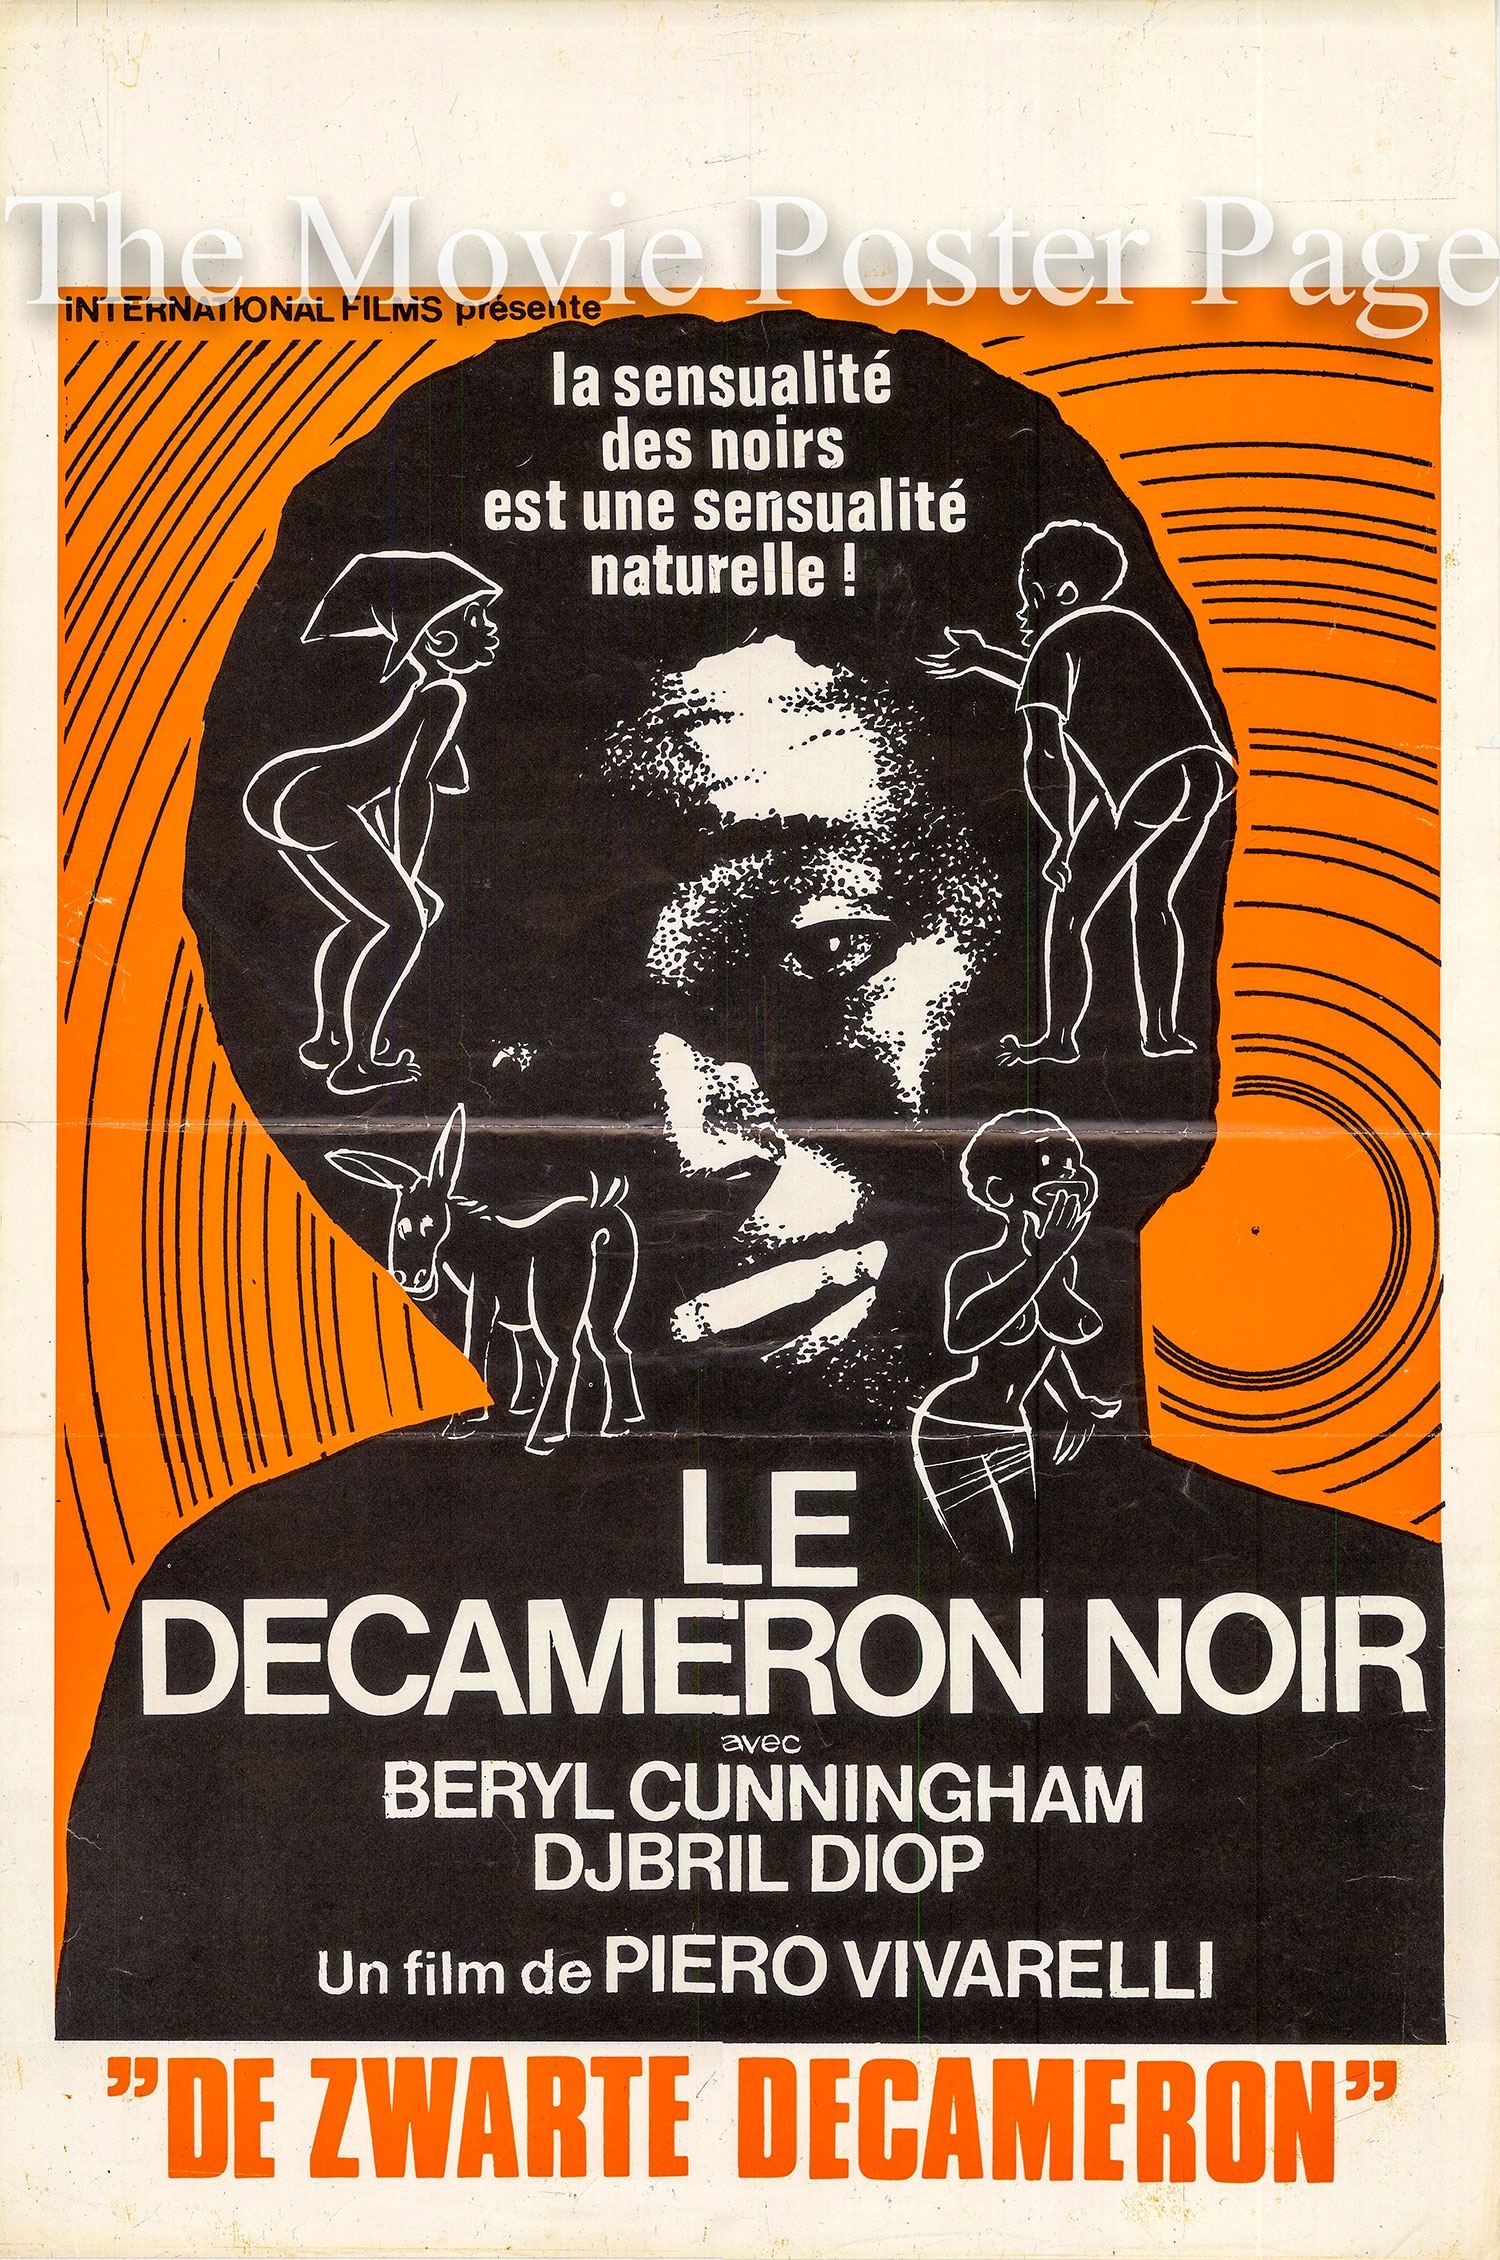 Pictured is a Belgian poster for the 1972 Piero Vivarelli film The Black Decameron starring Beryl Cunningham.